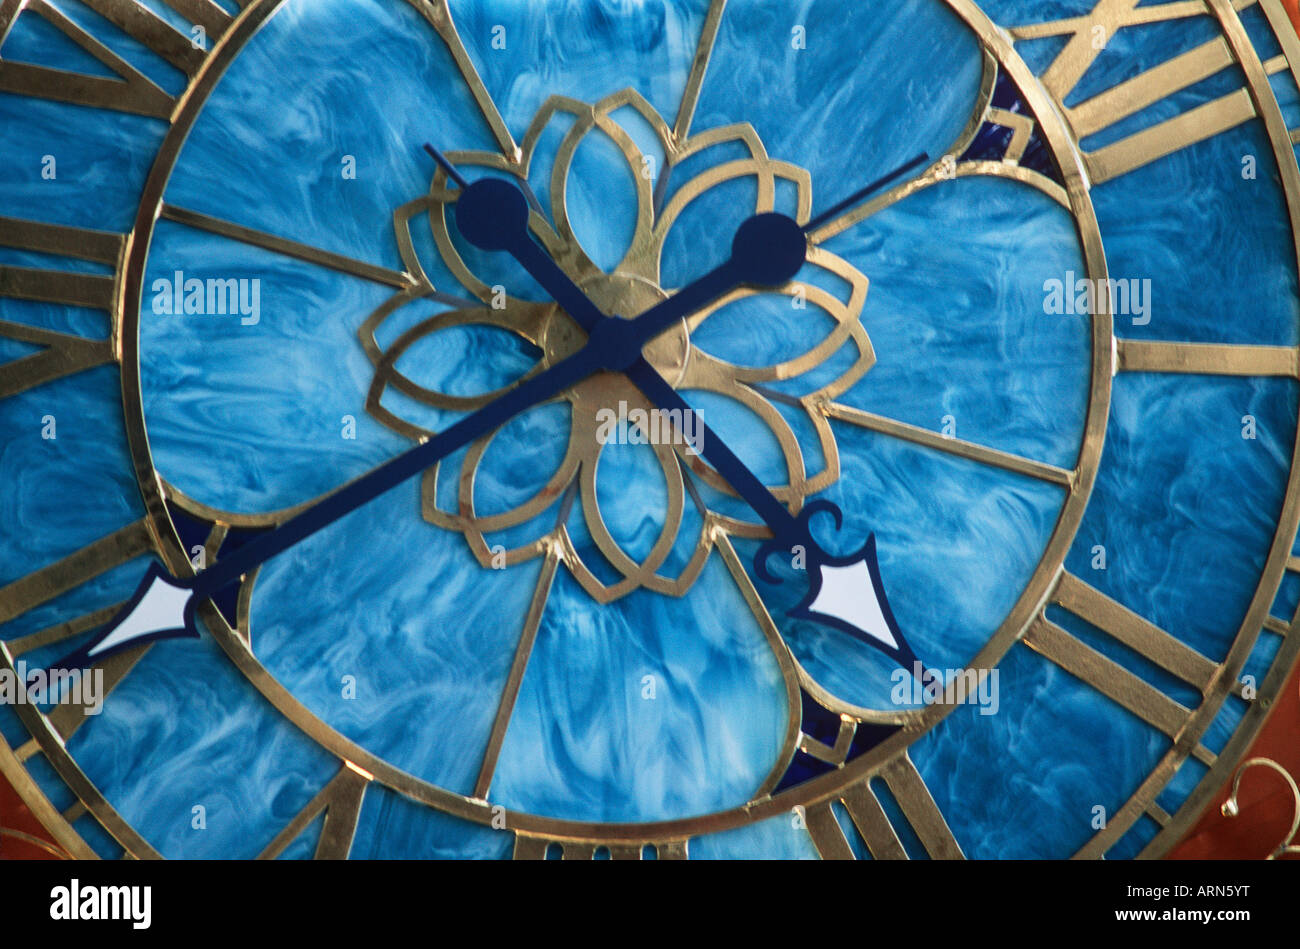 Time clock with roman numerals, British Columbia, Canada. - Stock Image